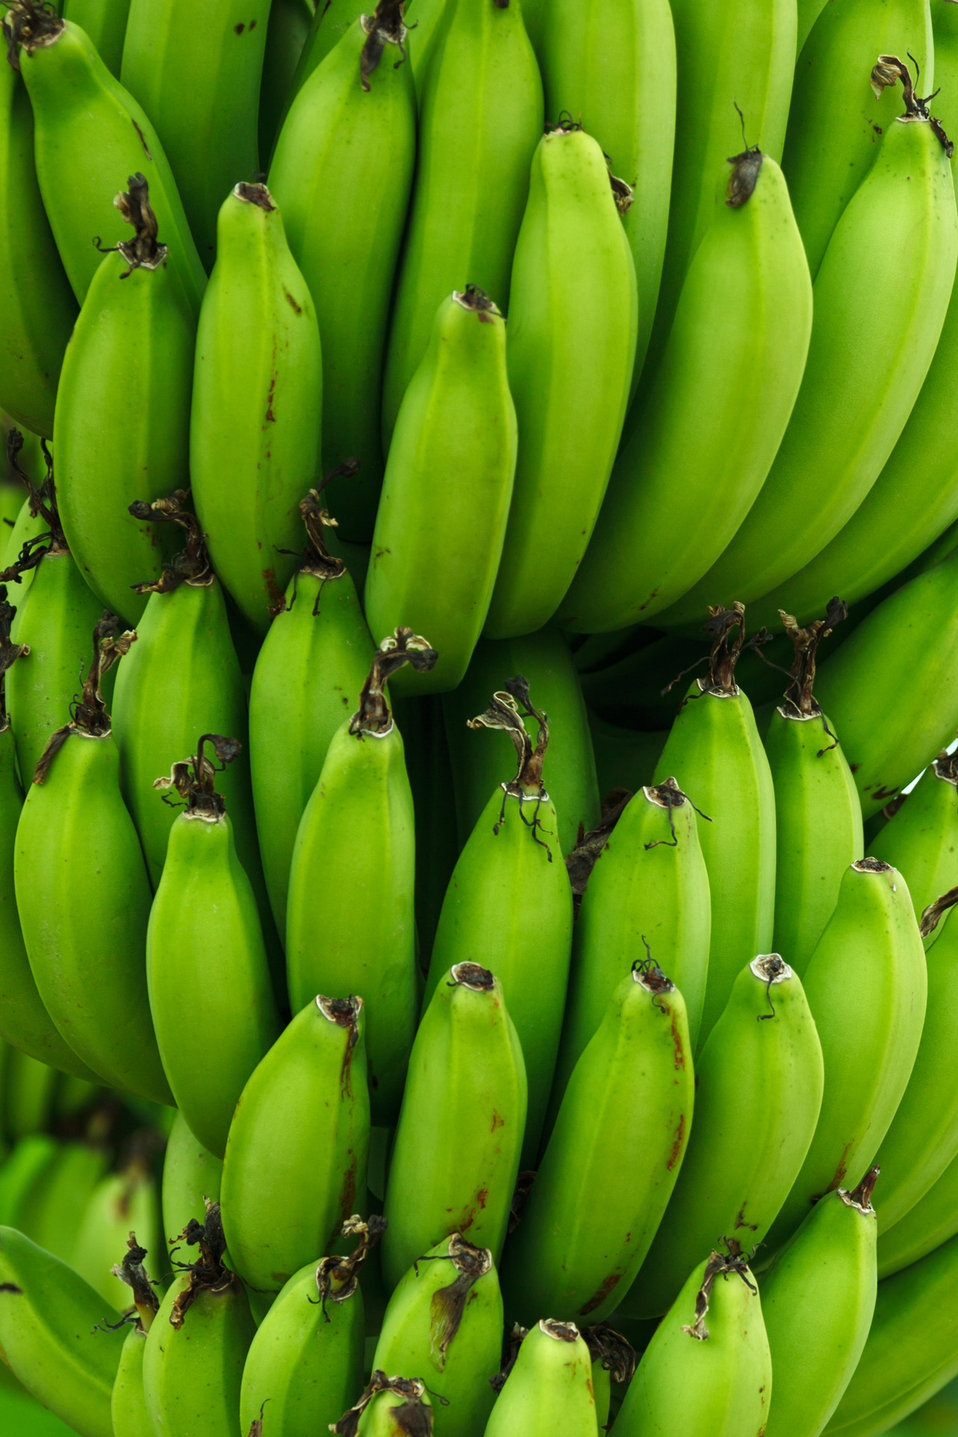 Green bananas background